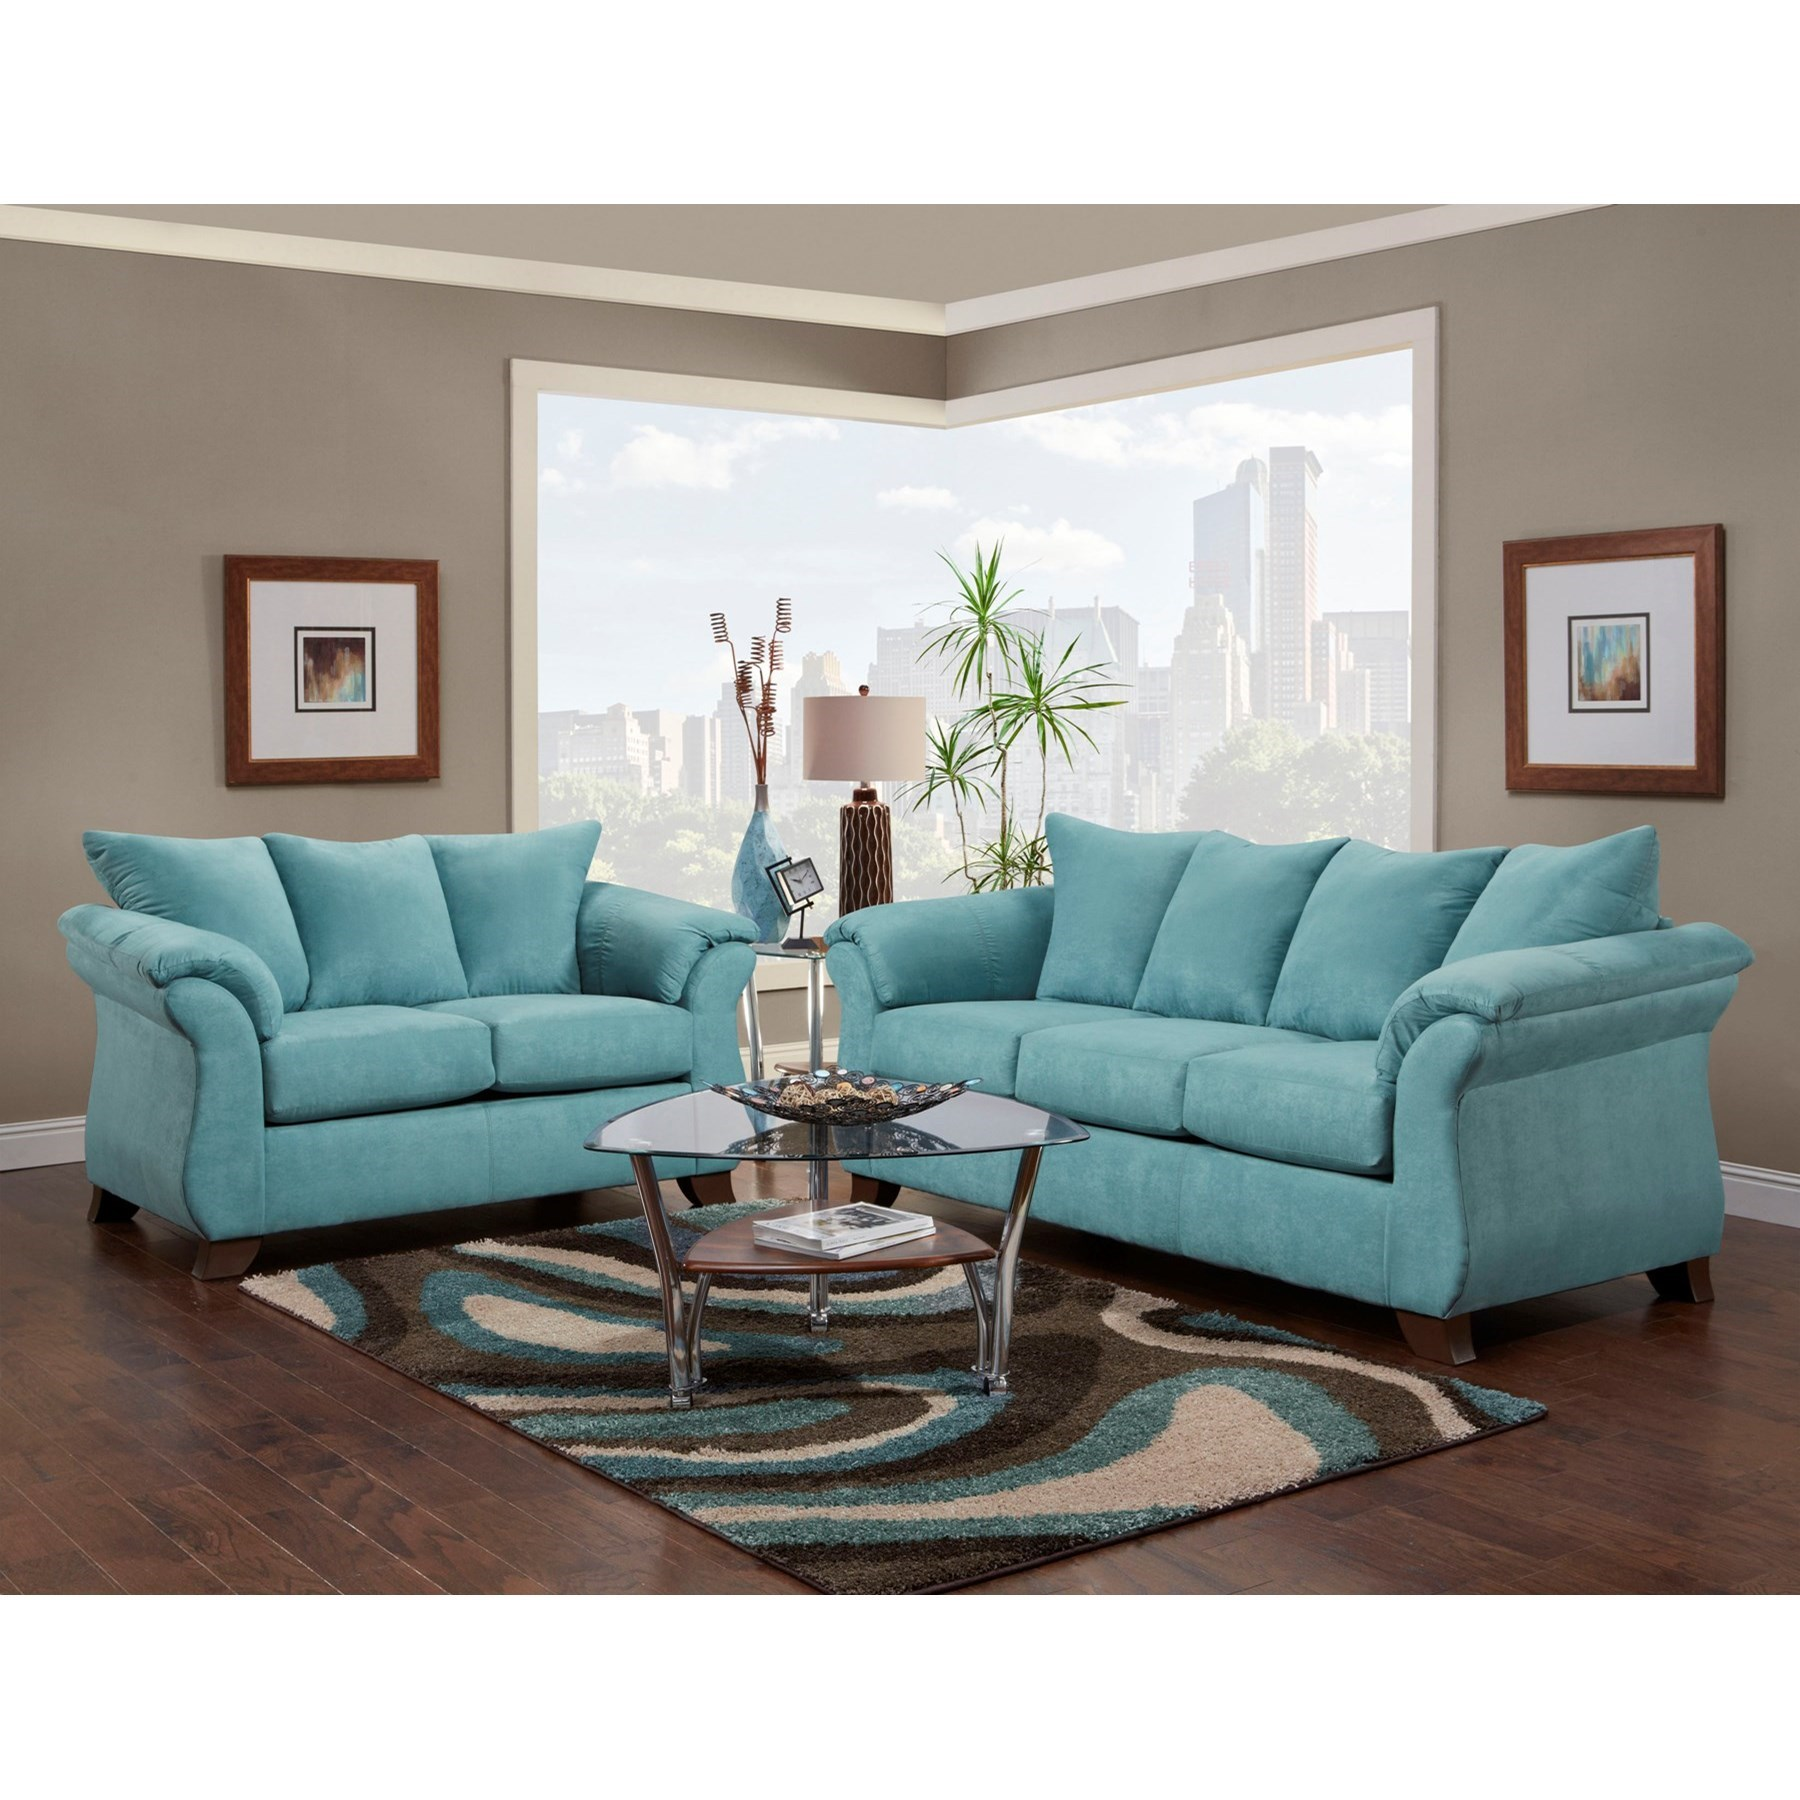 Affordable Furniture 6700 Living Room Group - Item Number: 6700 Living Room Group 1